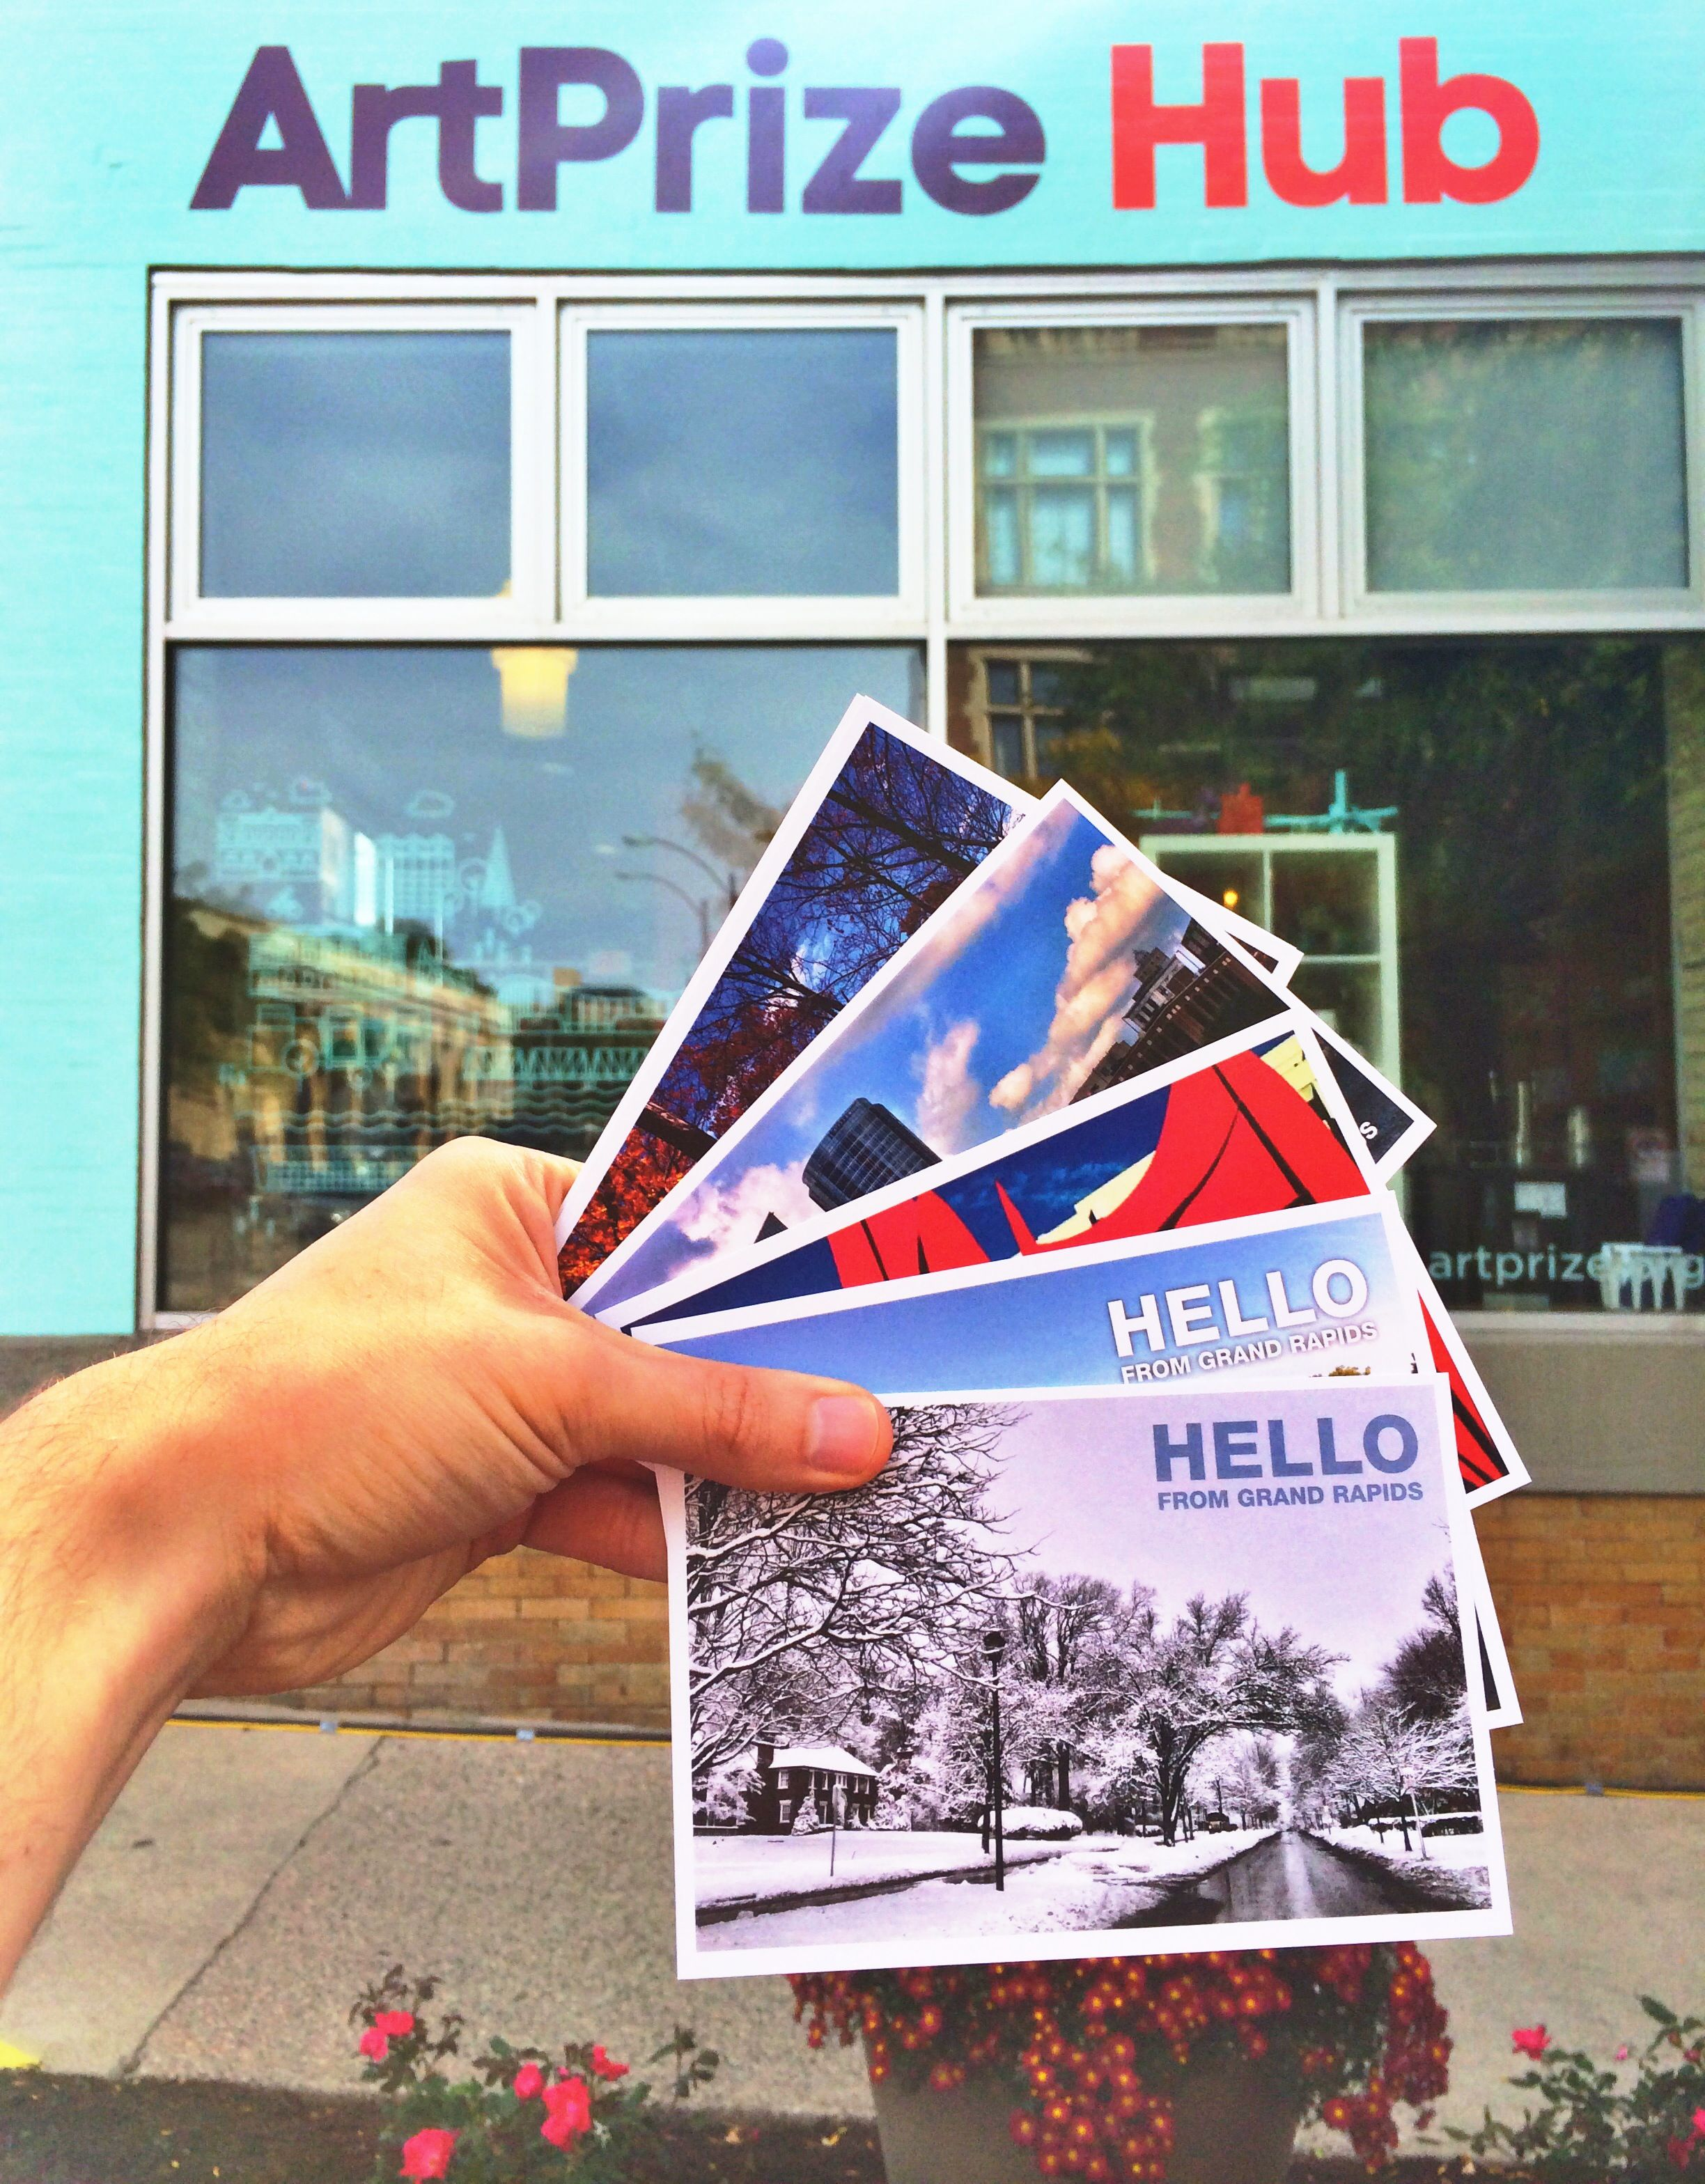 We just re-stocked the ArtPrize​ HUB gift shop with more Hello From Grand Rapids postcards!